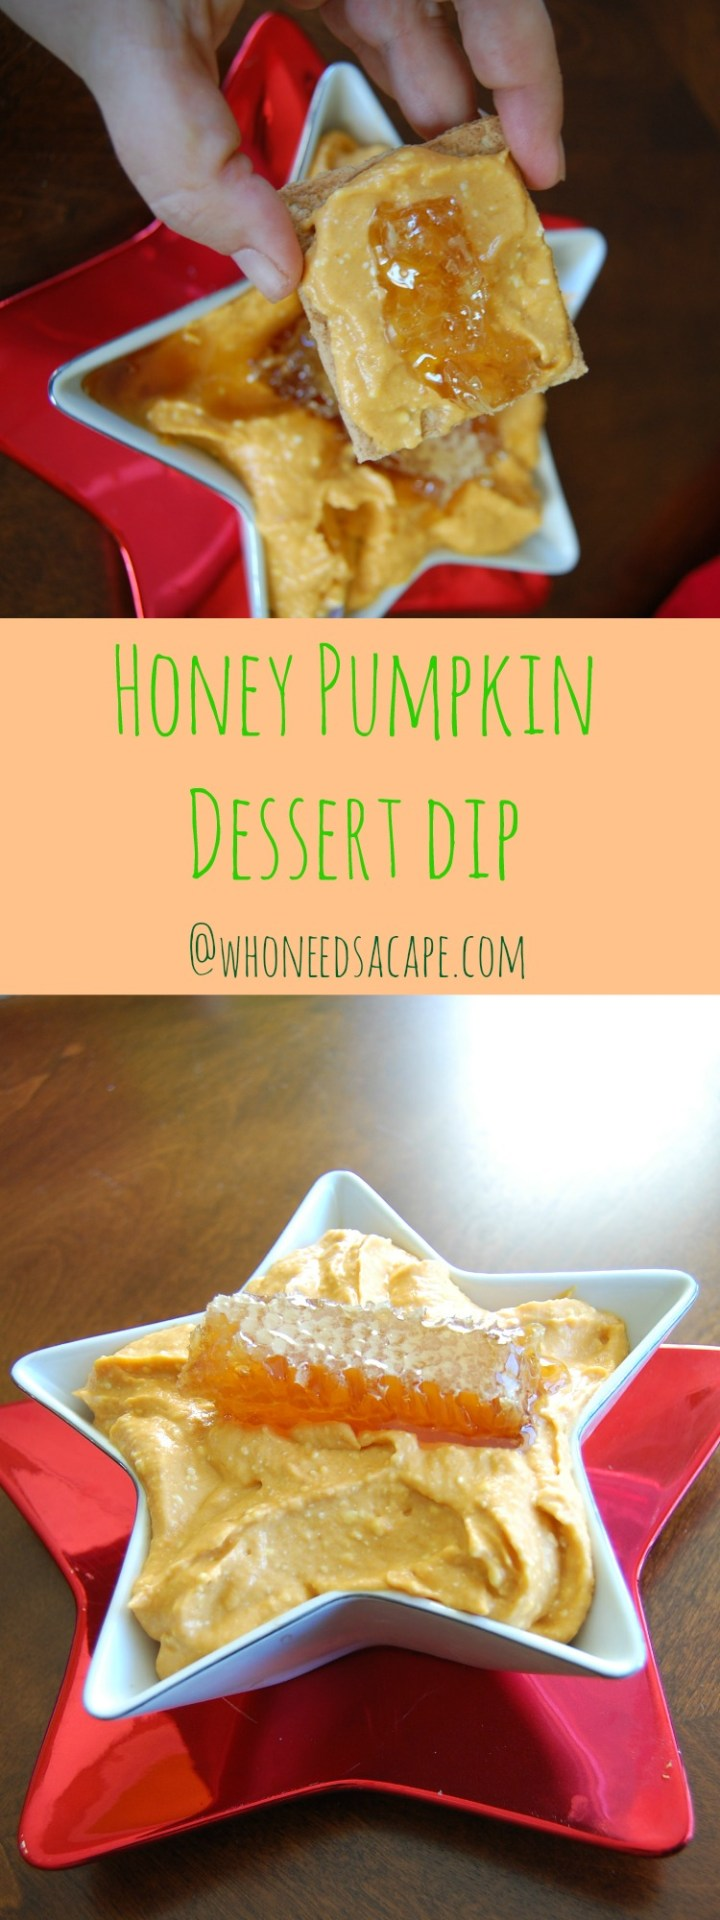 Honey Pumpkin Dessert Dip is a simple *NO BAKE* dessert dip. It will be perfect for any holiday occasion and looks great on the dessert table!